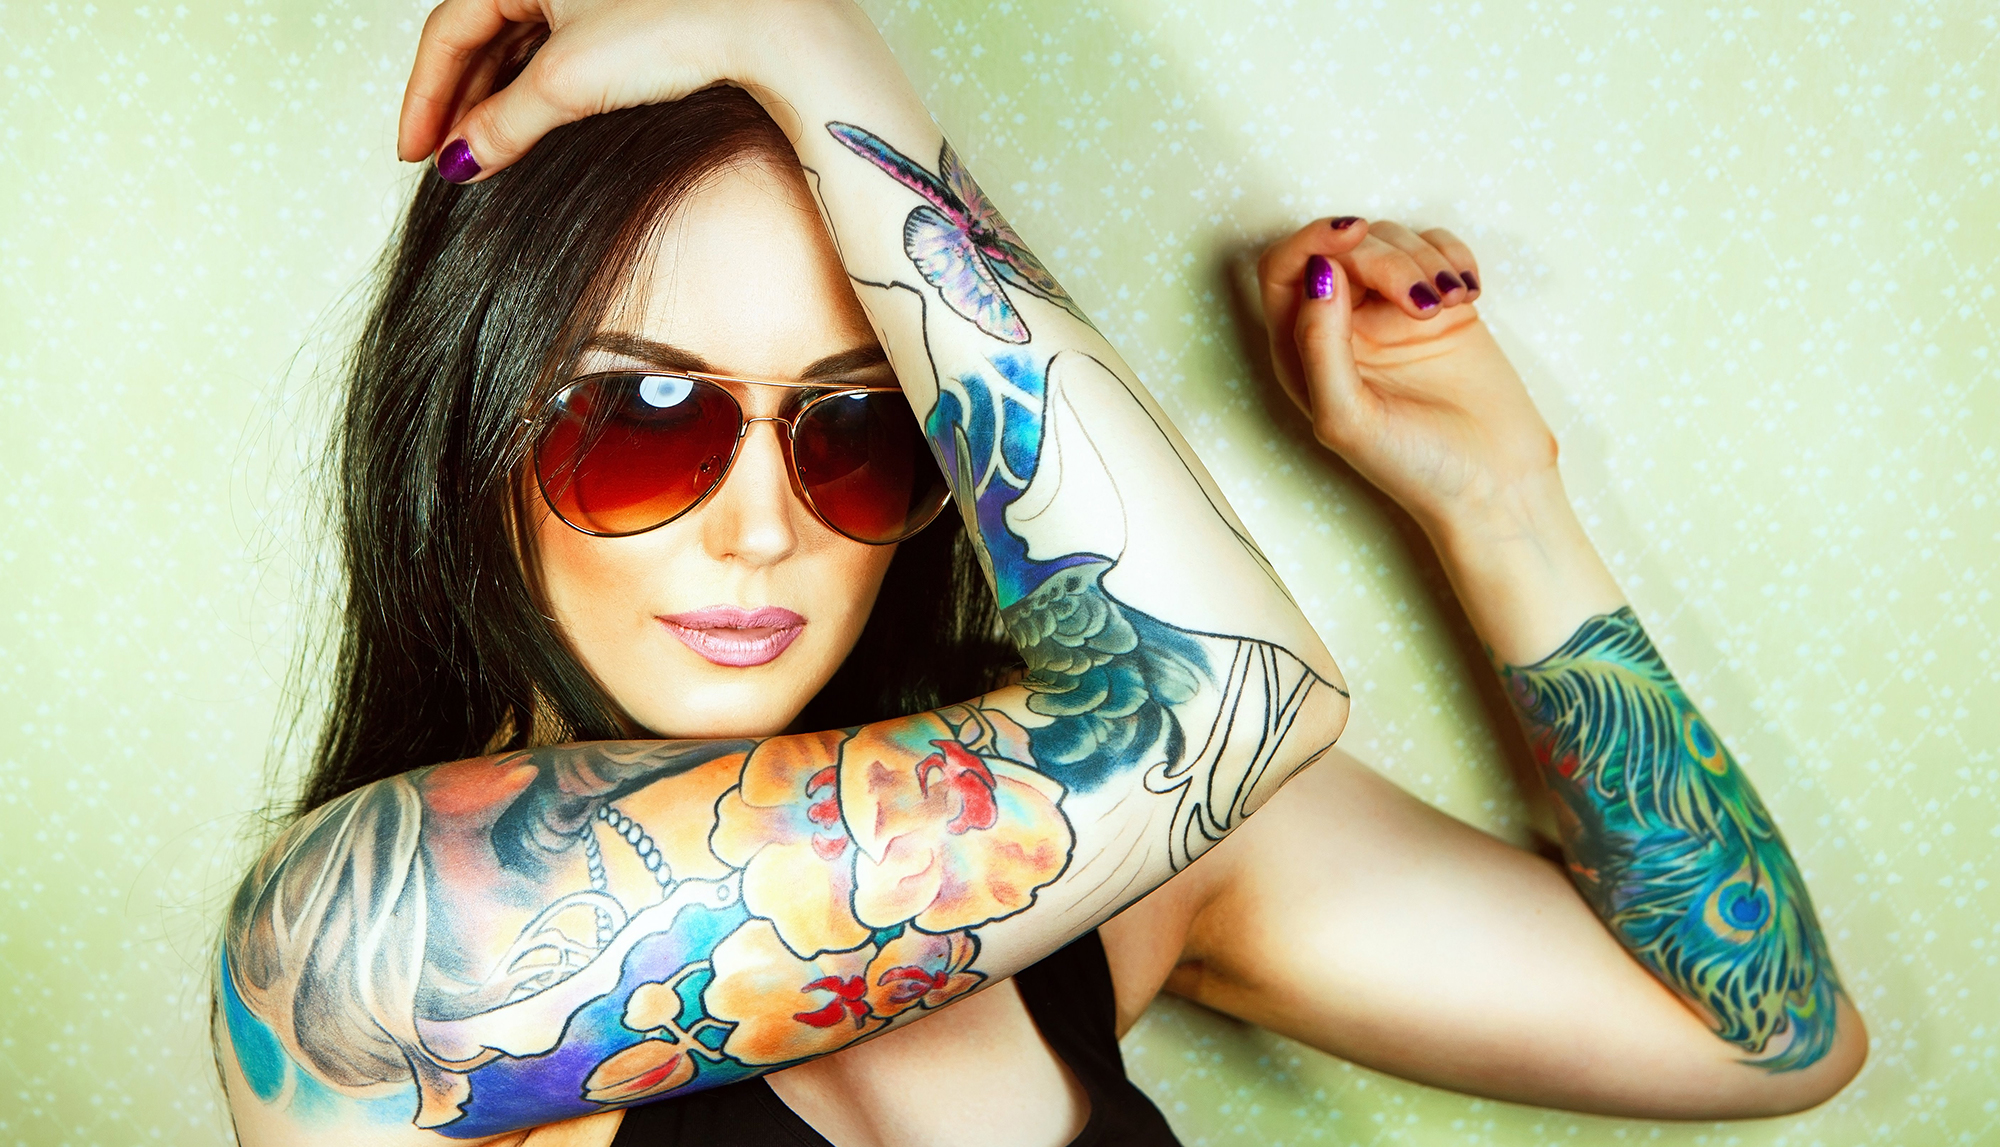 woman-sleeve-tattoos.jpg